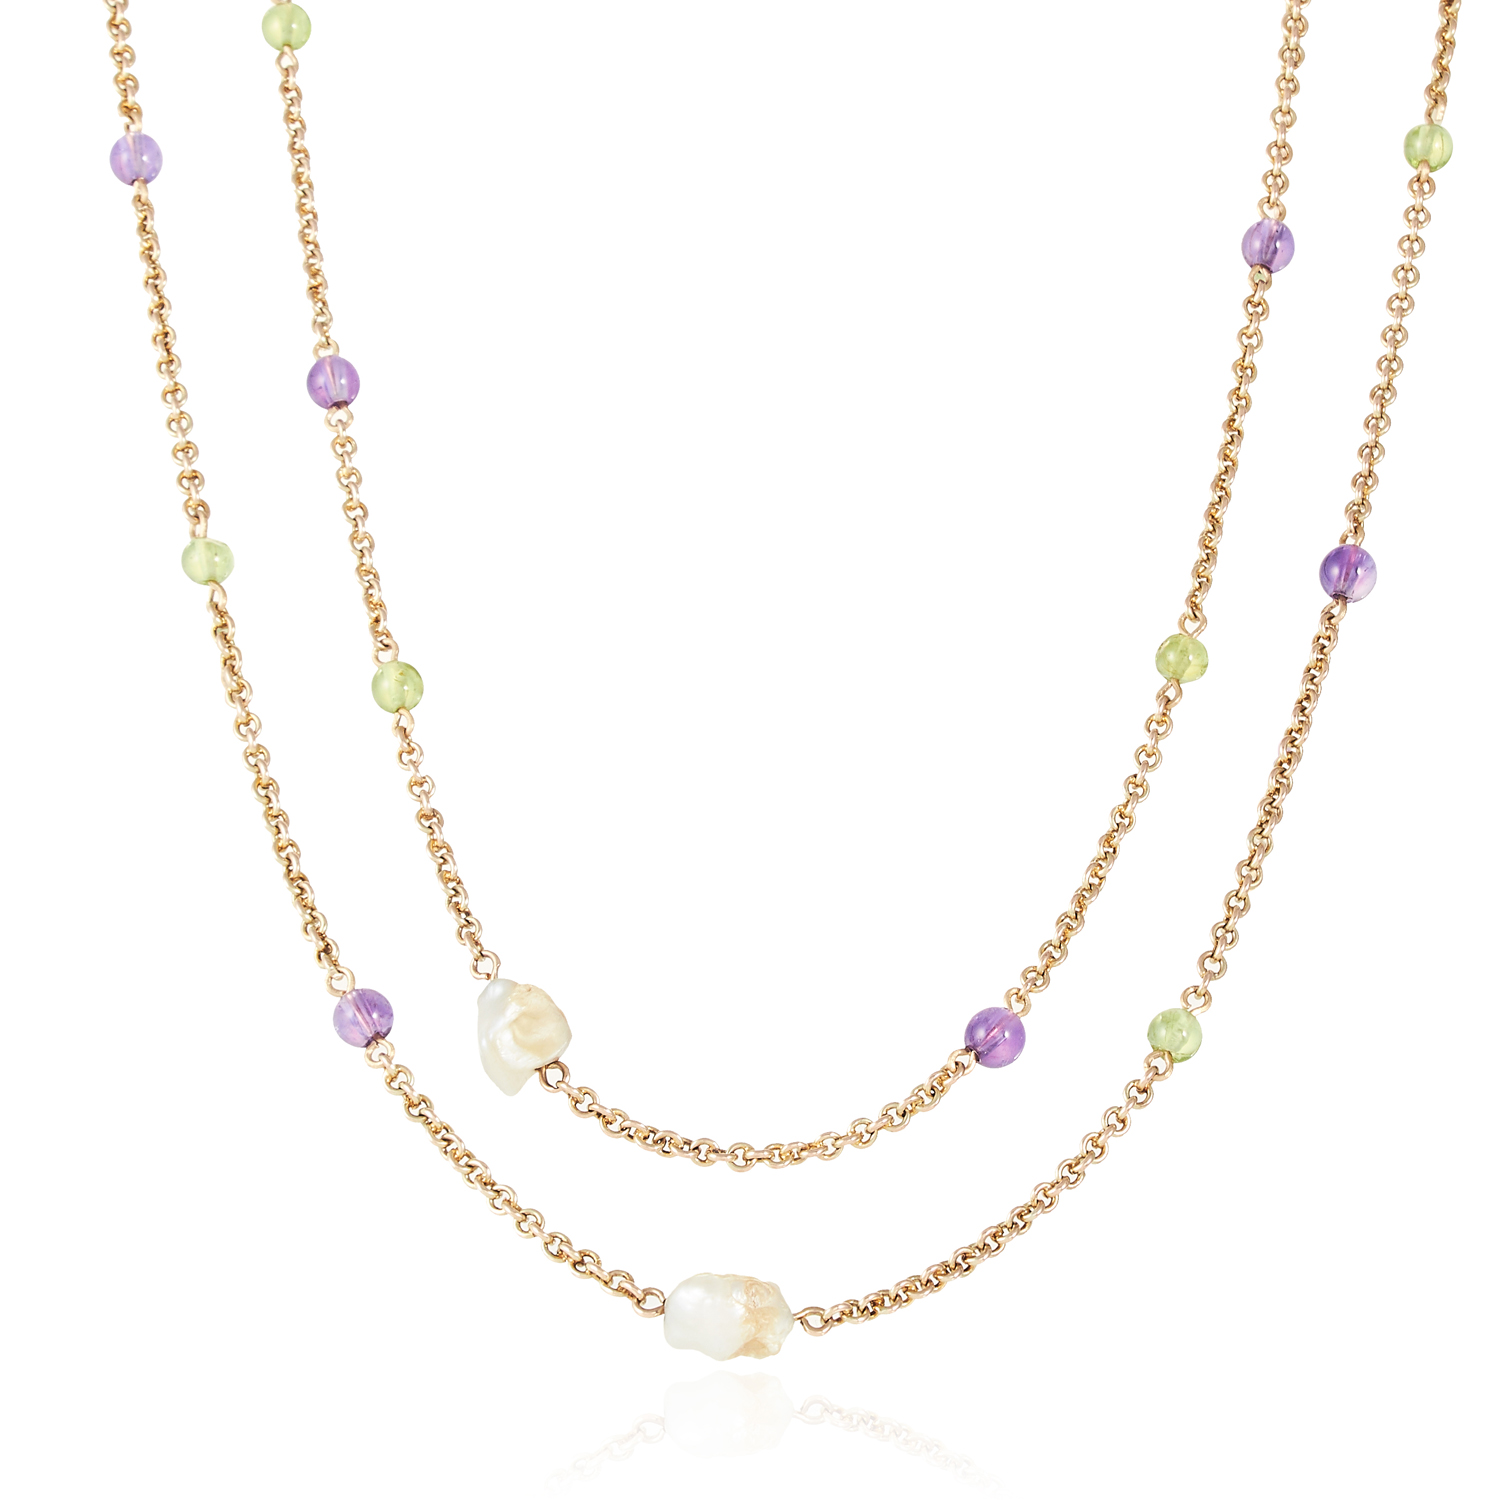 AN ANTIQUE NATURAL PEARL, PERIDOT AND AMETHYST SUFFRAGETTE SAUTOIR NECKLACE, EARLY 20TH CENTURY in